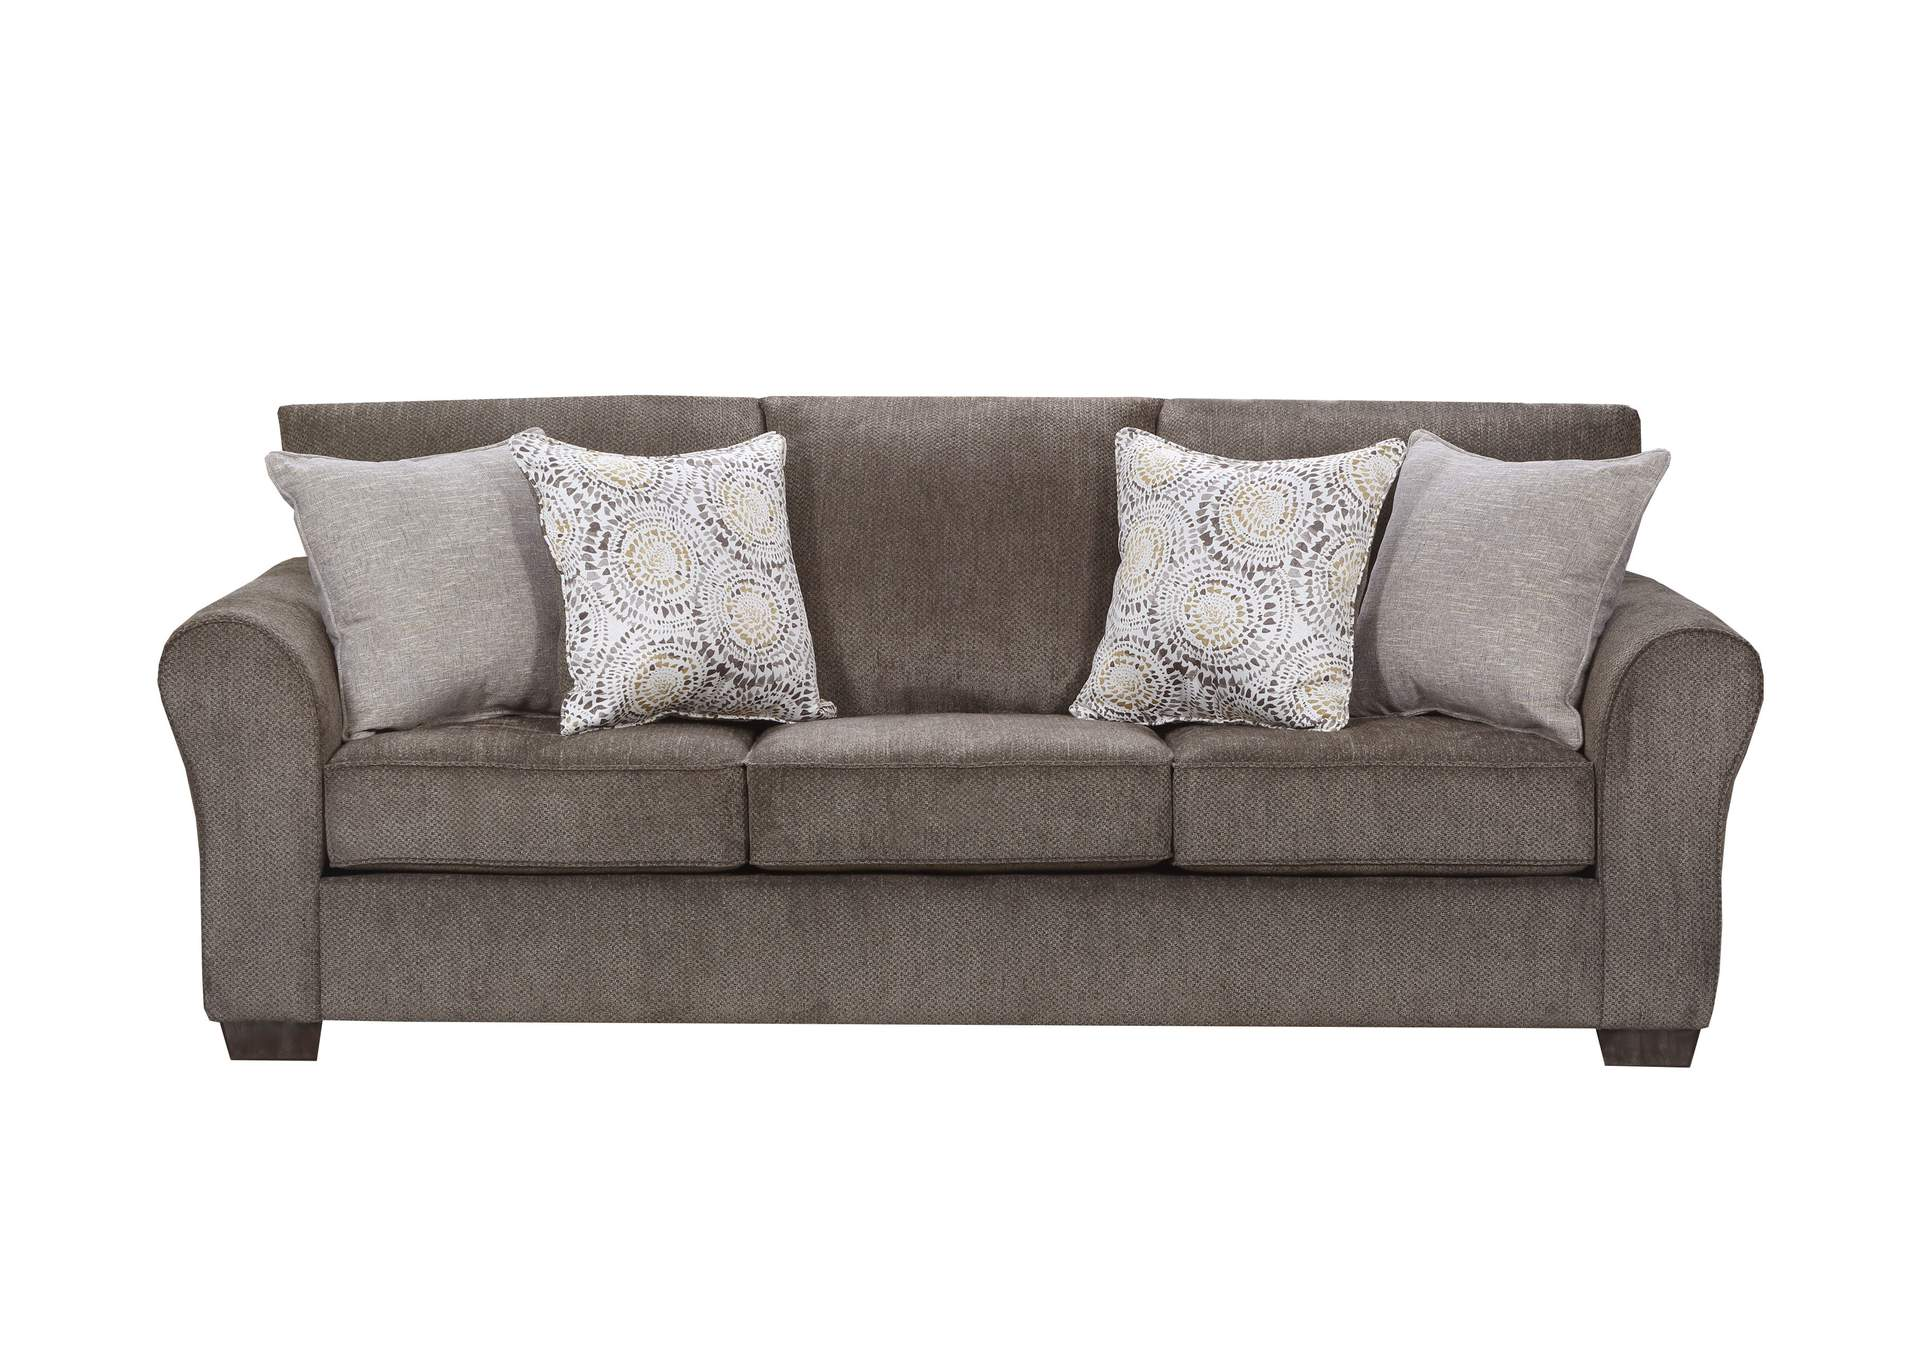 1657 Sofa,Lane Furniture